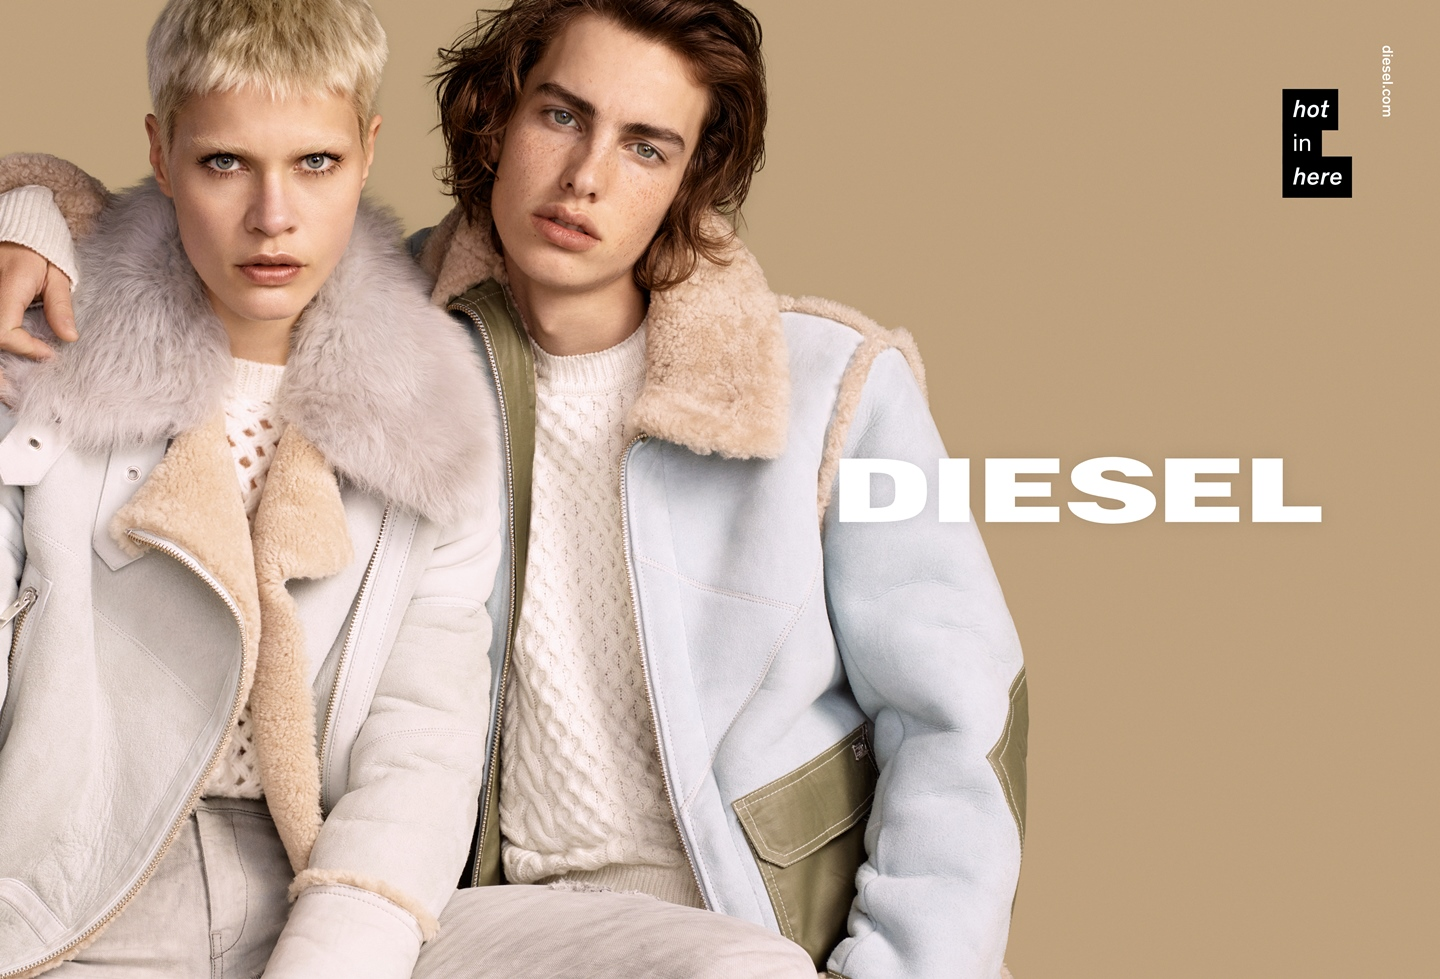 289209_623216_diesel_campaign_fw16_atl_wild_lyfe_couple_dps_highres